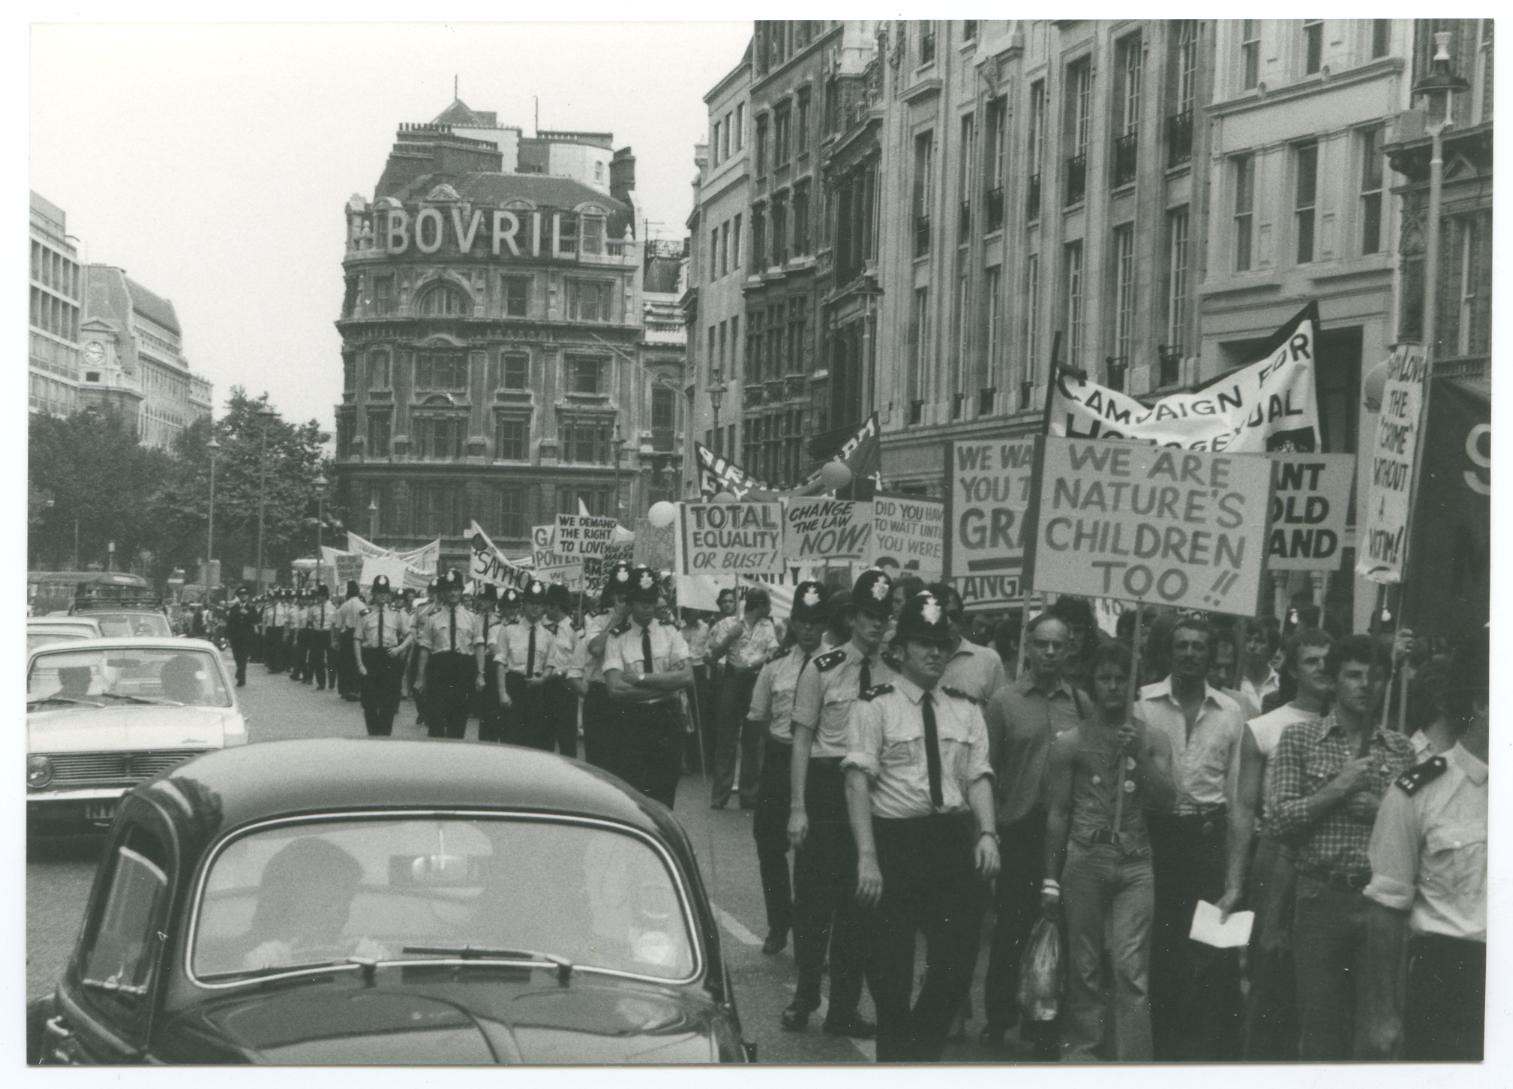 Black and white photo of marchers and police at Gay Pride march, London in 1974